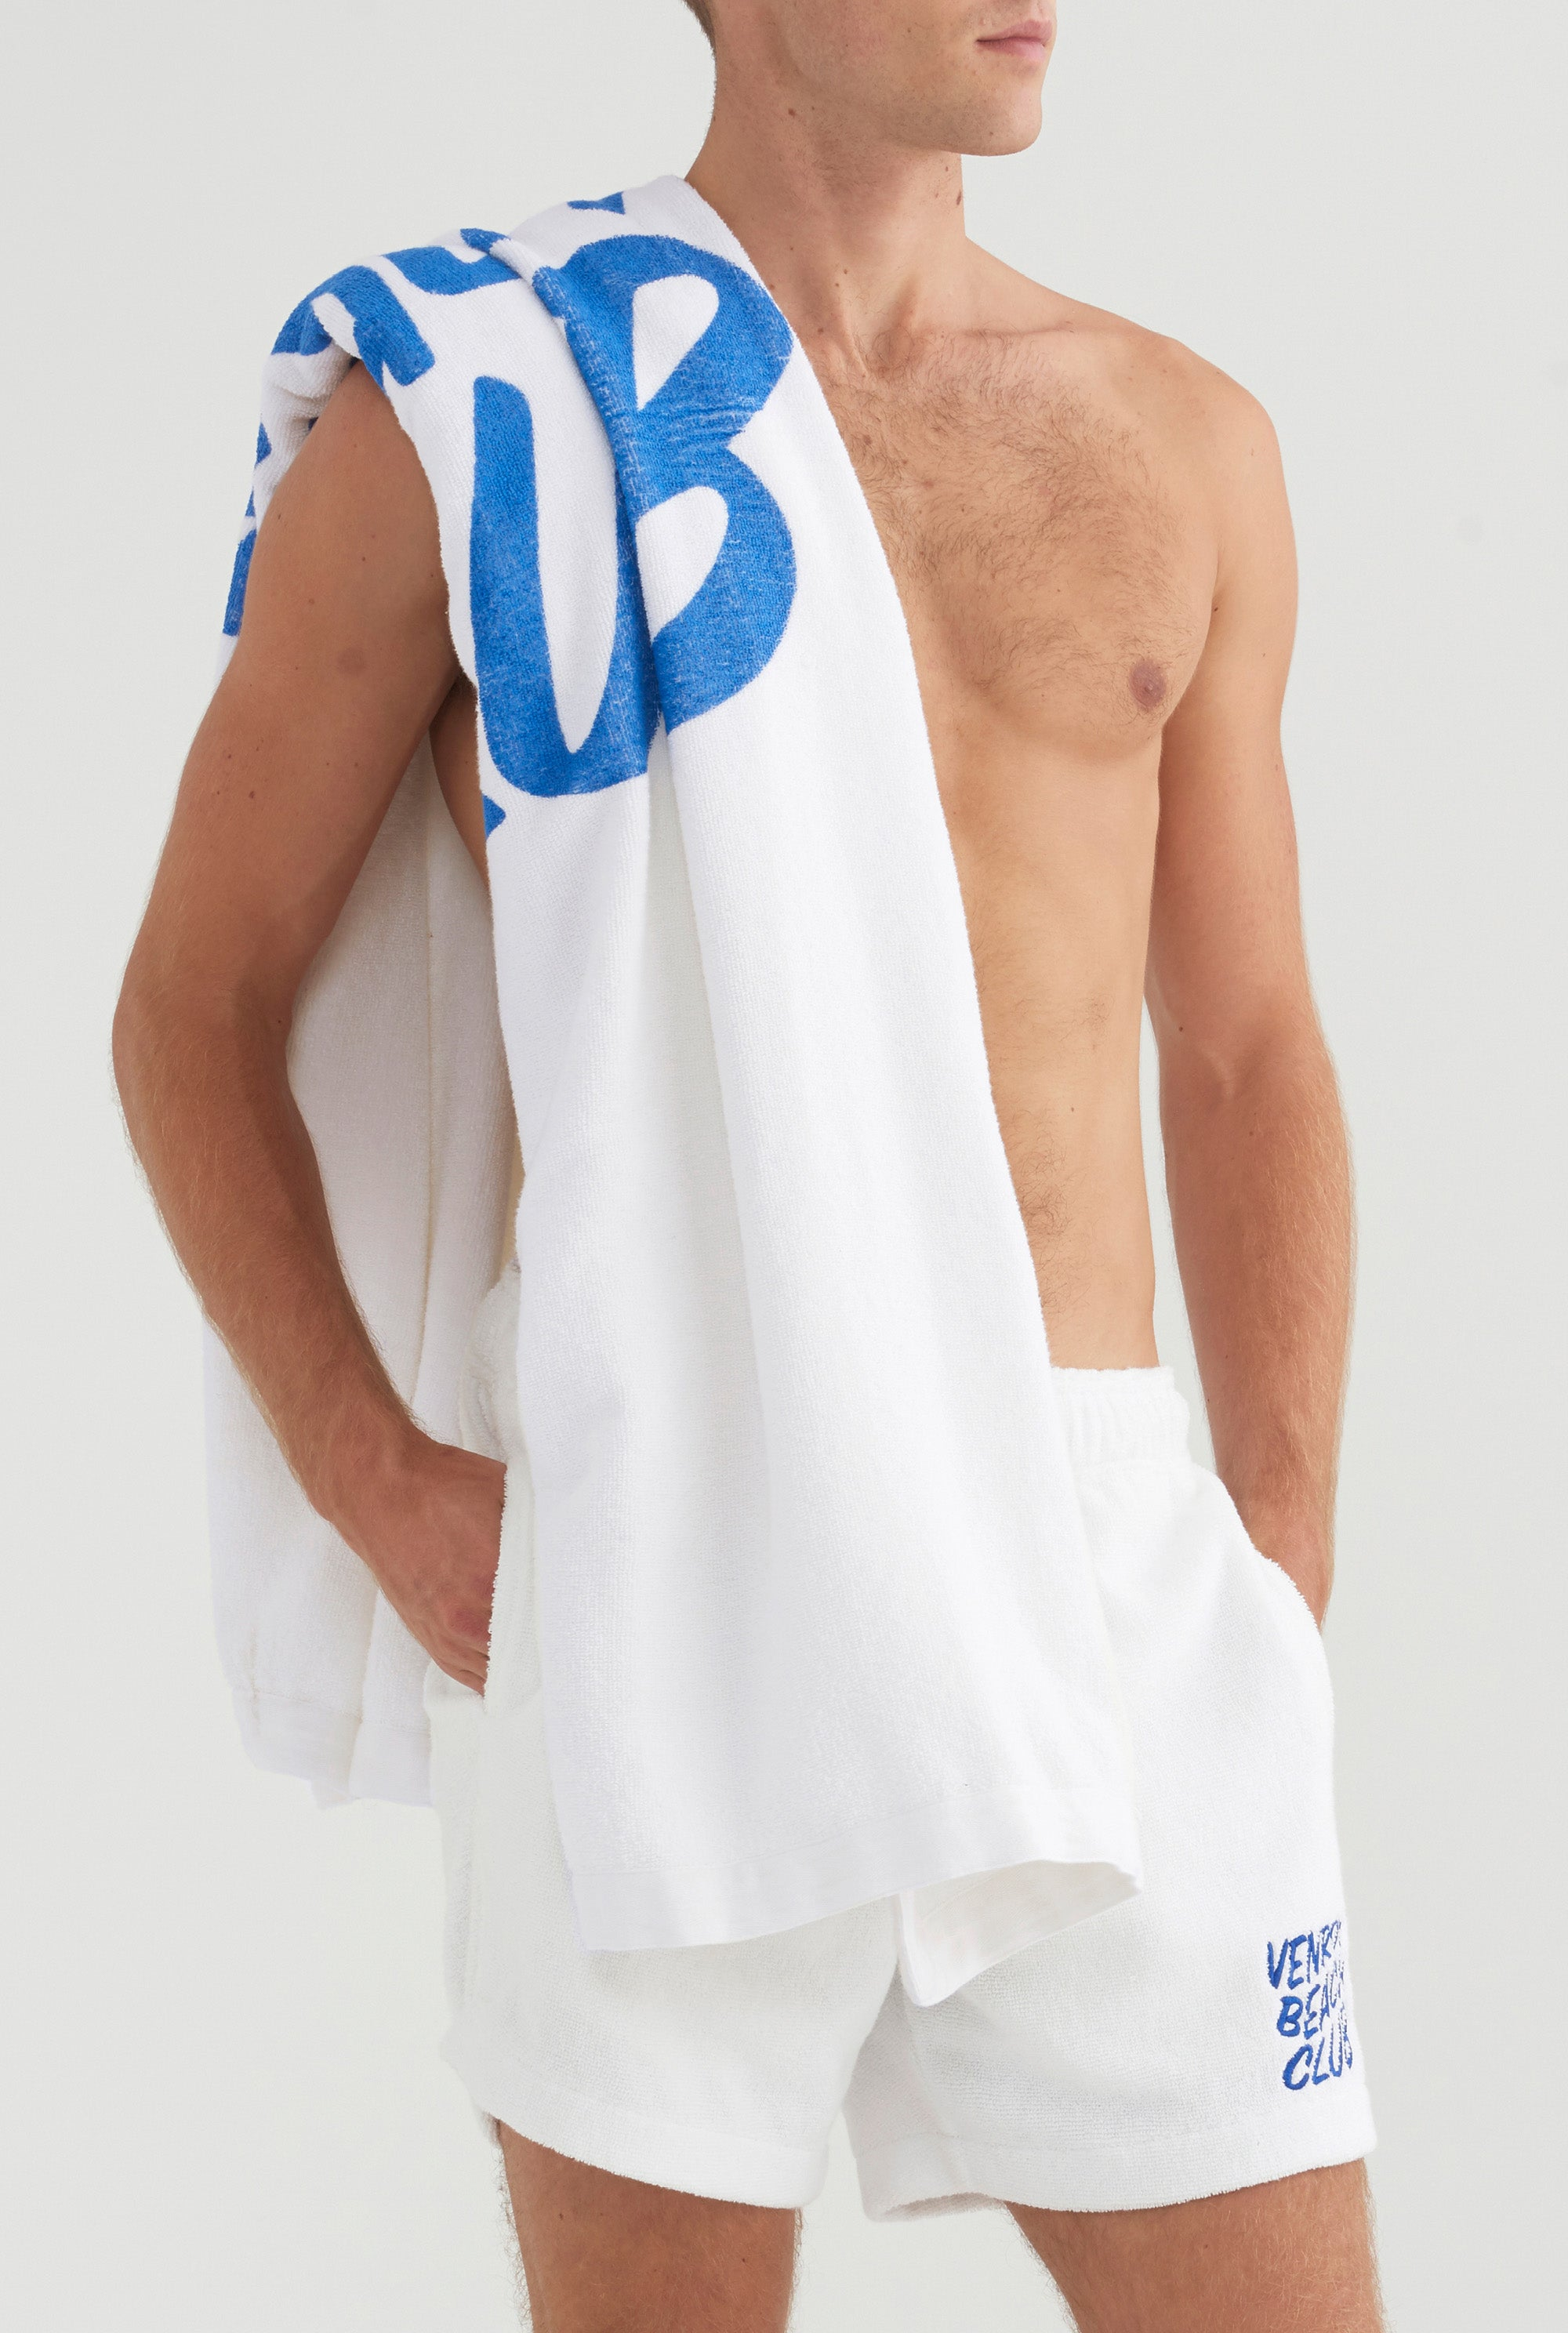 Beach Club Towel - White/Cobalt Blue